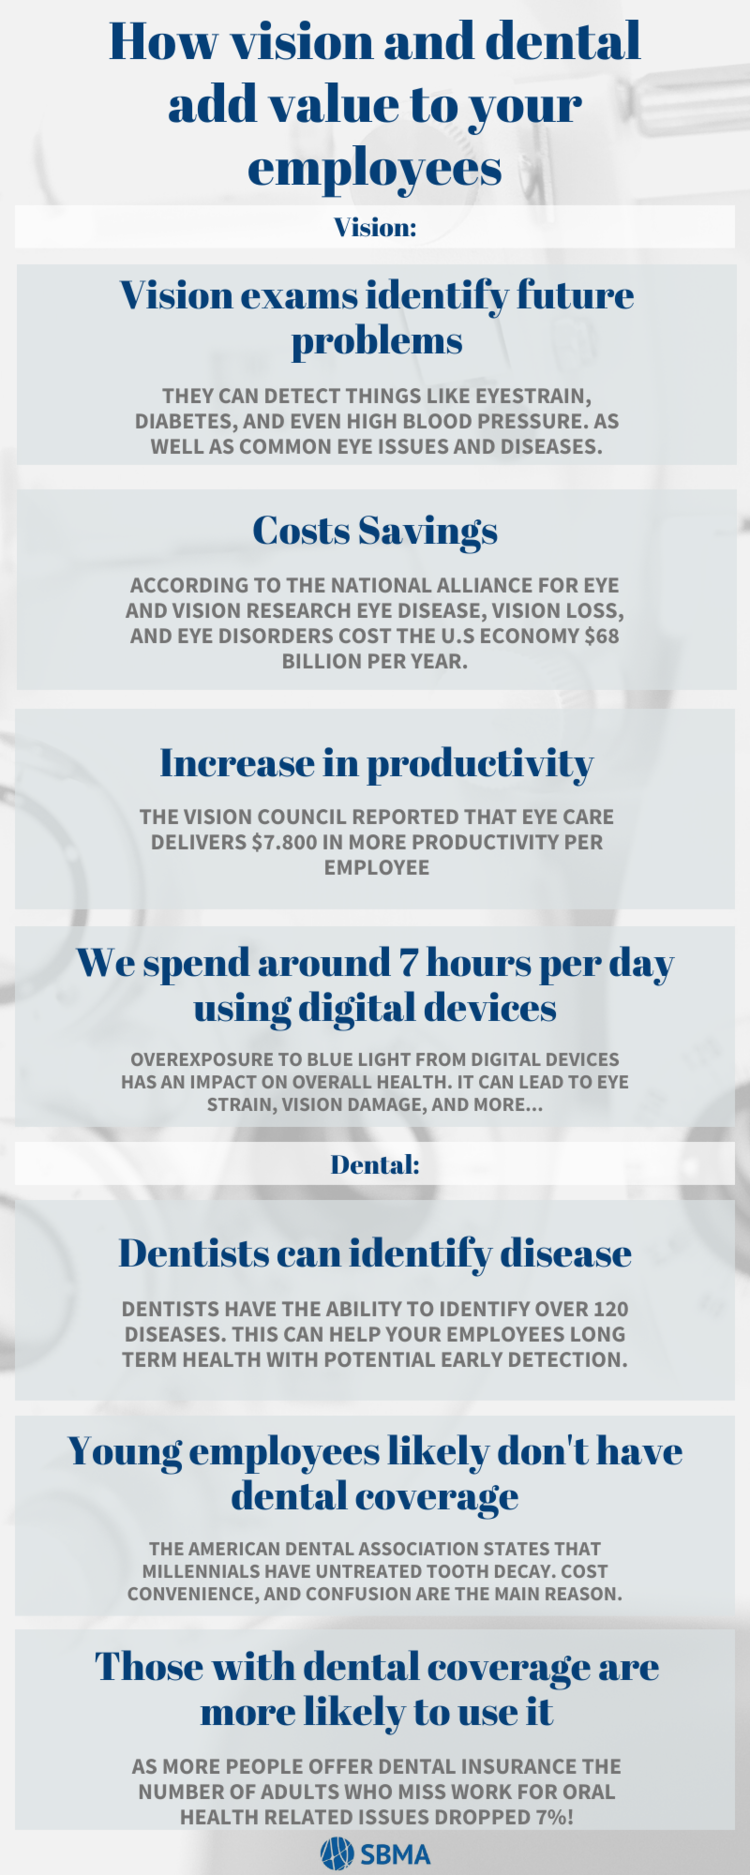 How vision and dental add value to your employees (1).png